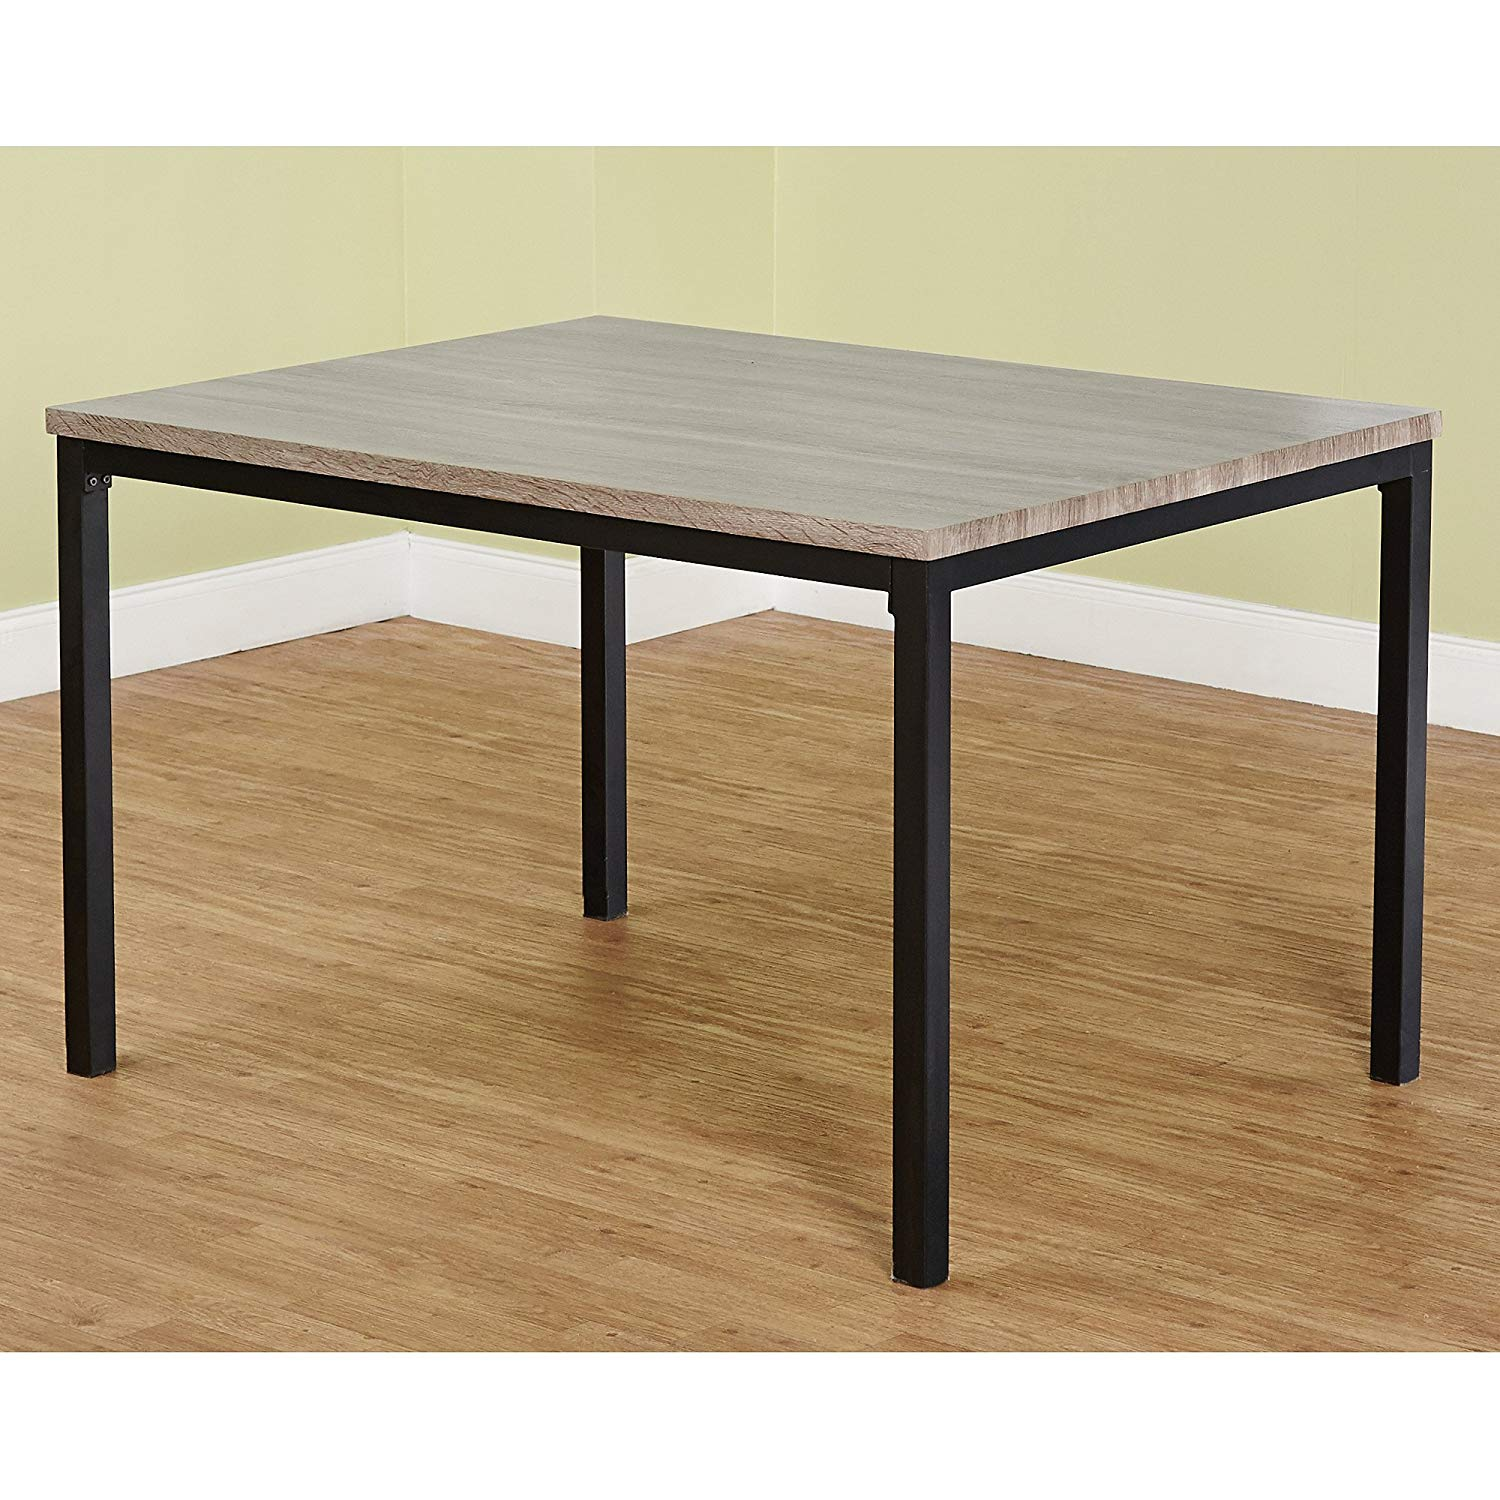 Cheap Dining Table Bases Metal, find Dining Table Bases